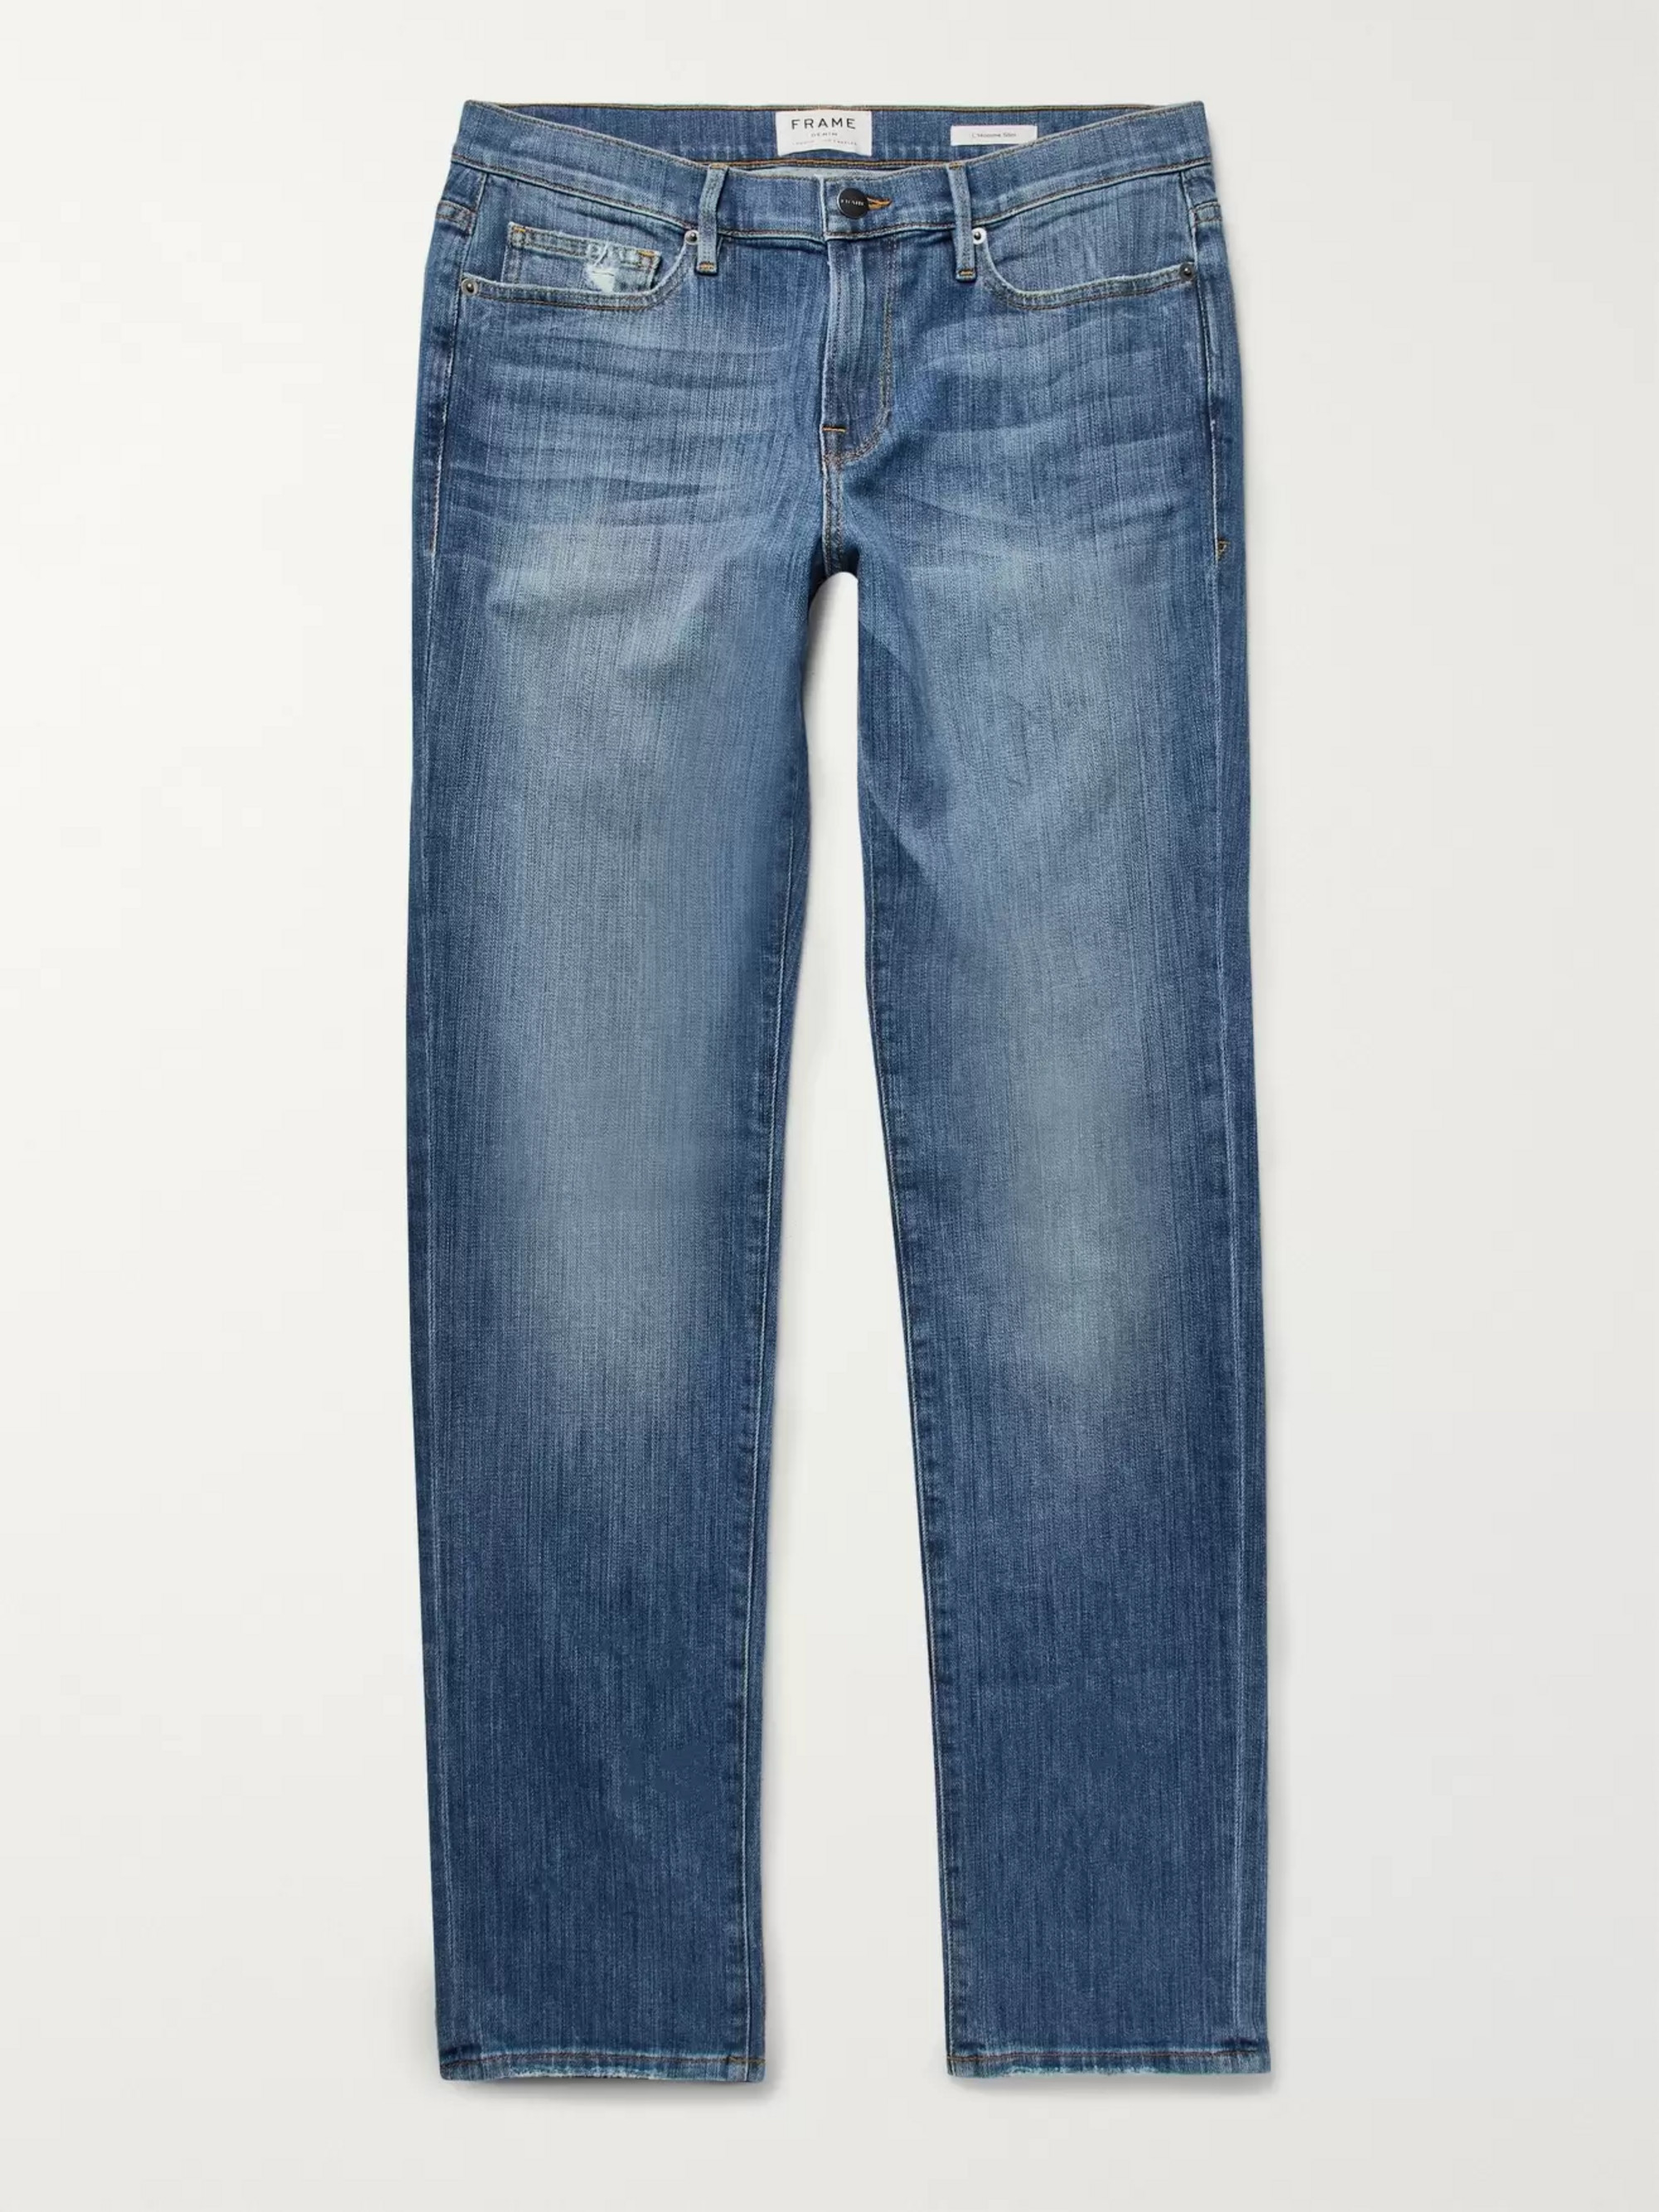 FRAME L'Homme Slim-Fit Distressed Stretch-Denim Jeans